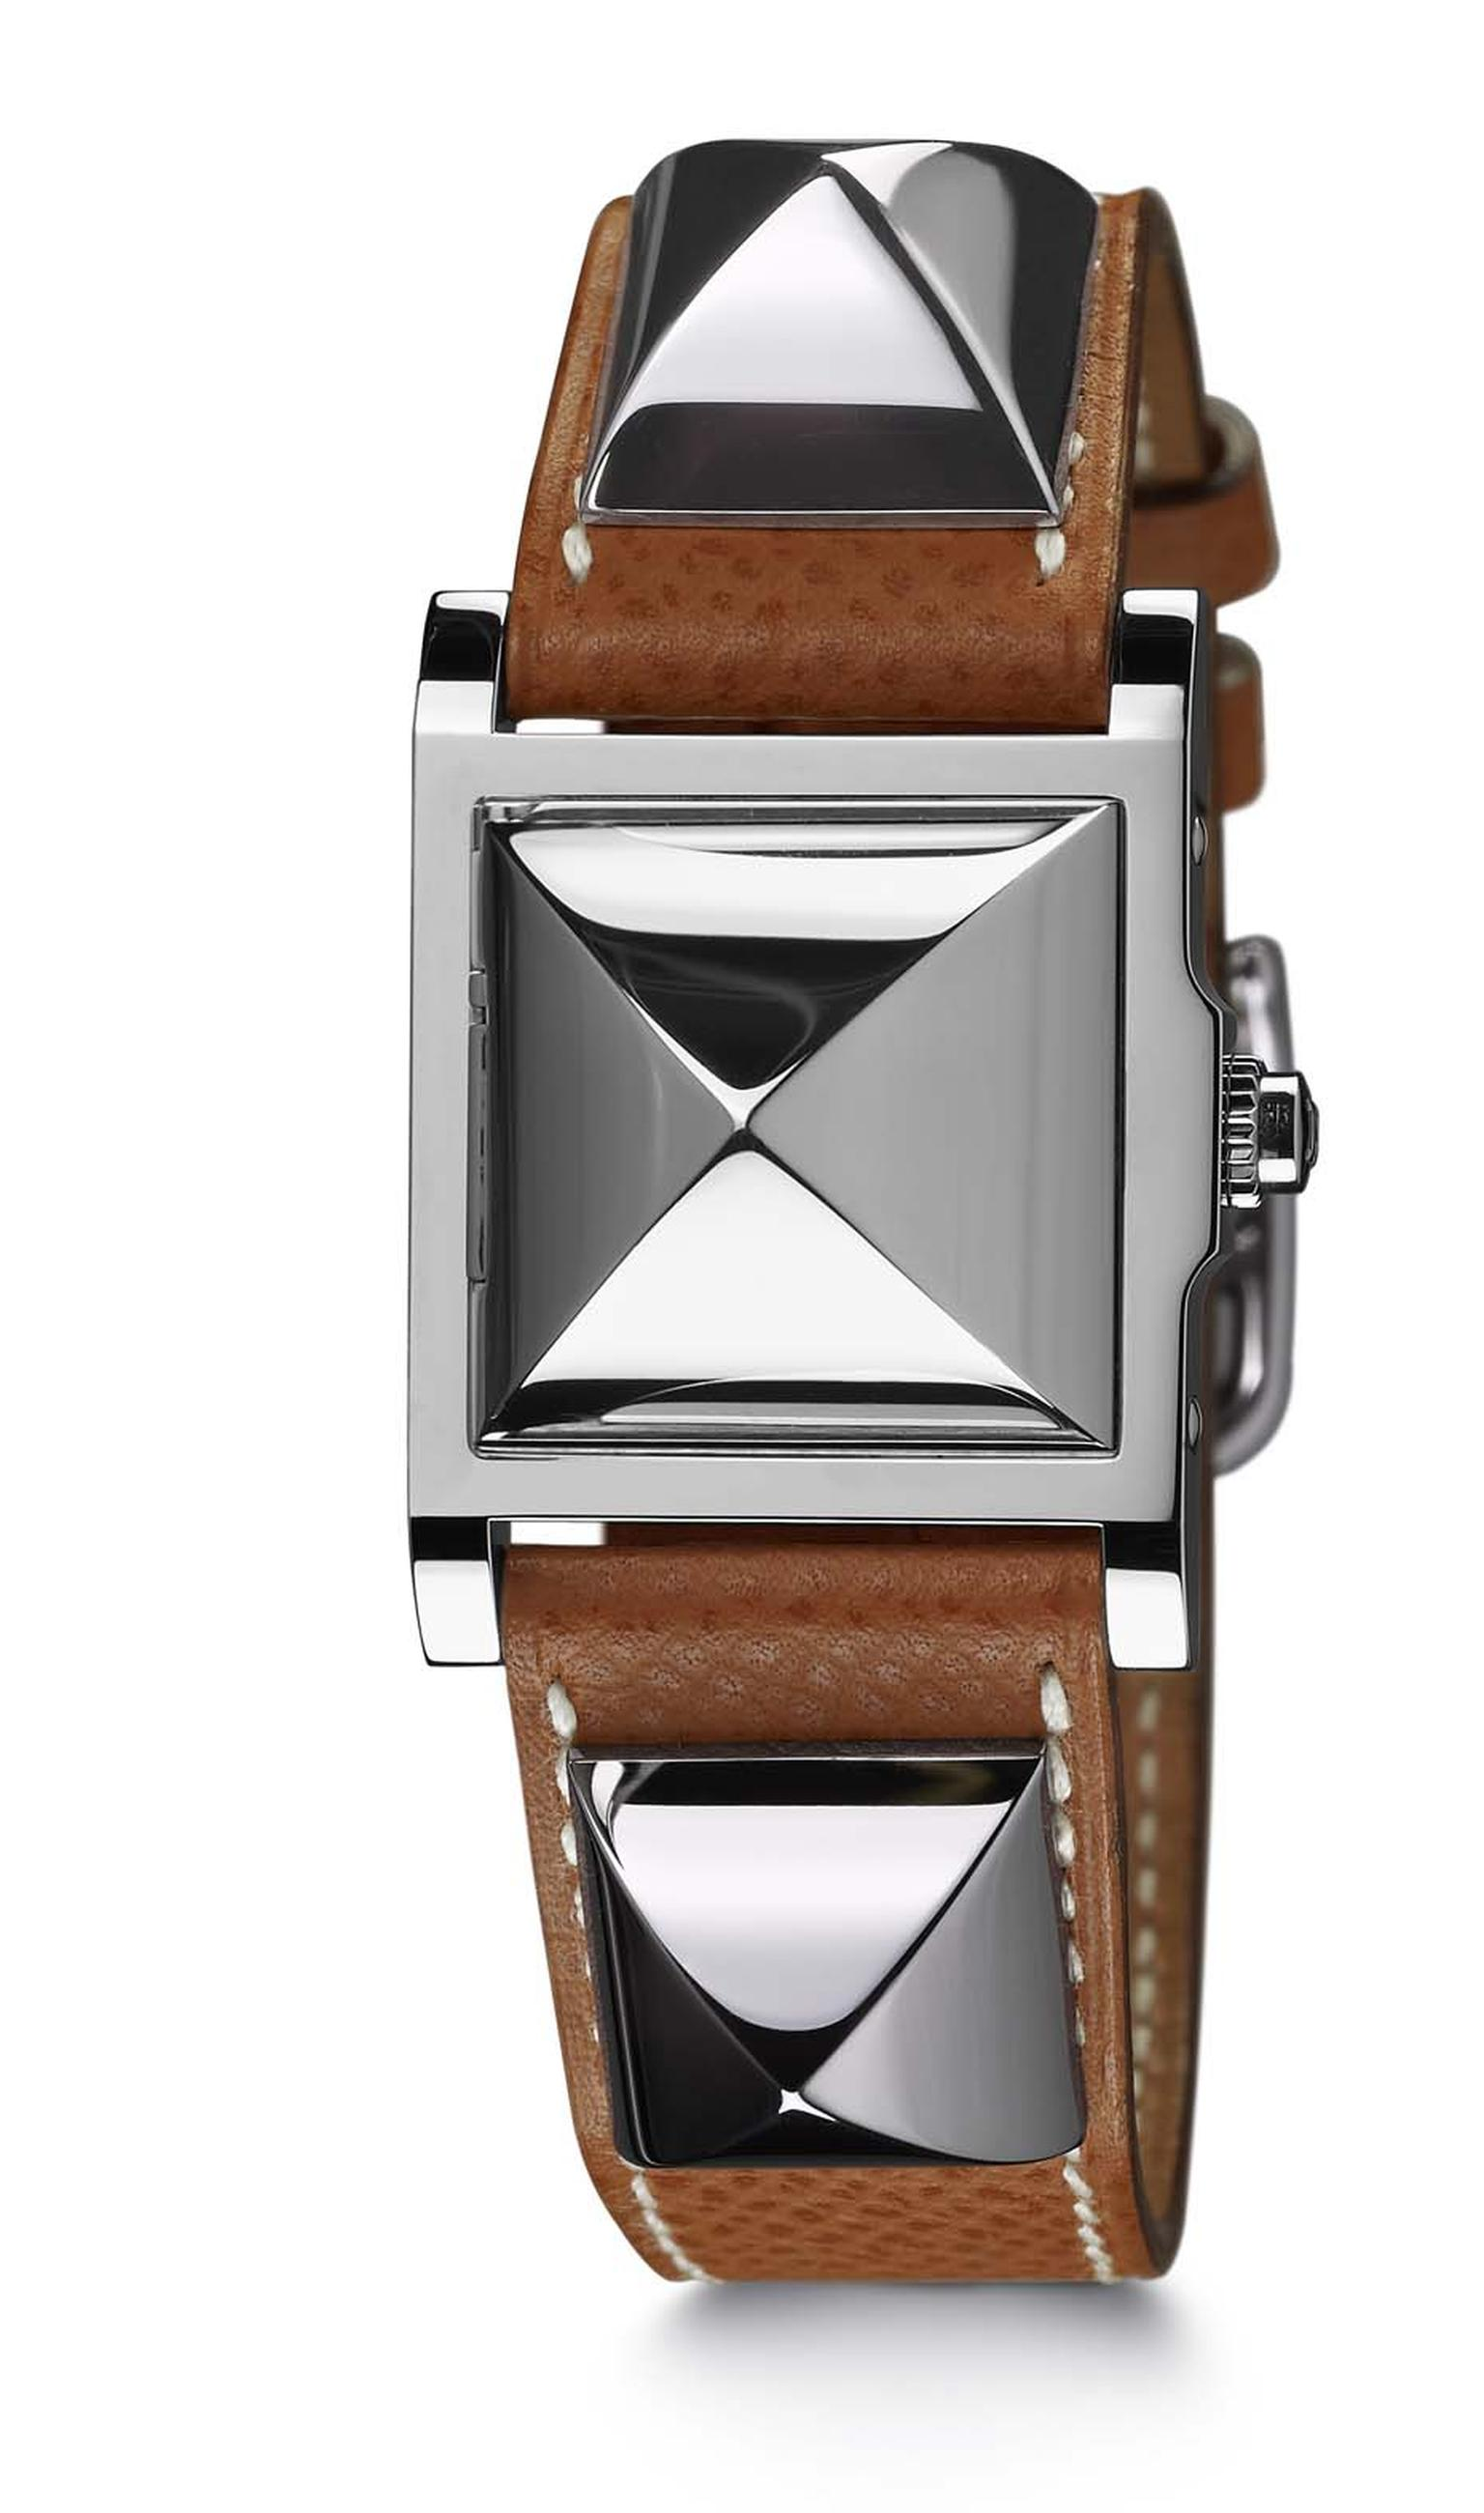 Hermès Médor watch featuring rhodium-plated pyramids and a natural Barenia calfskin strap.